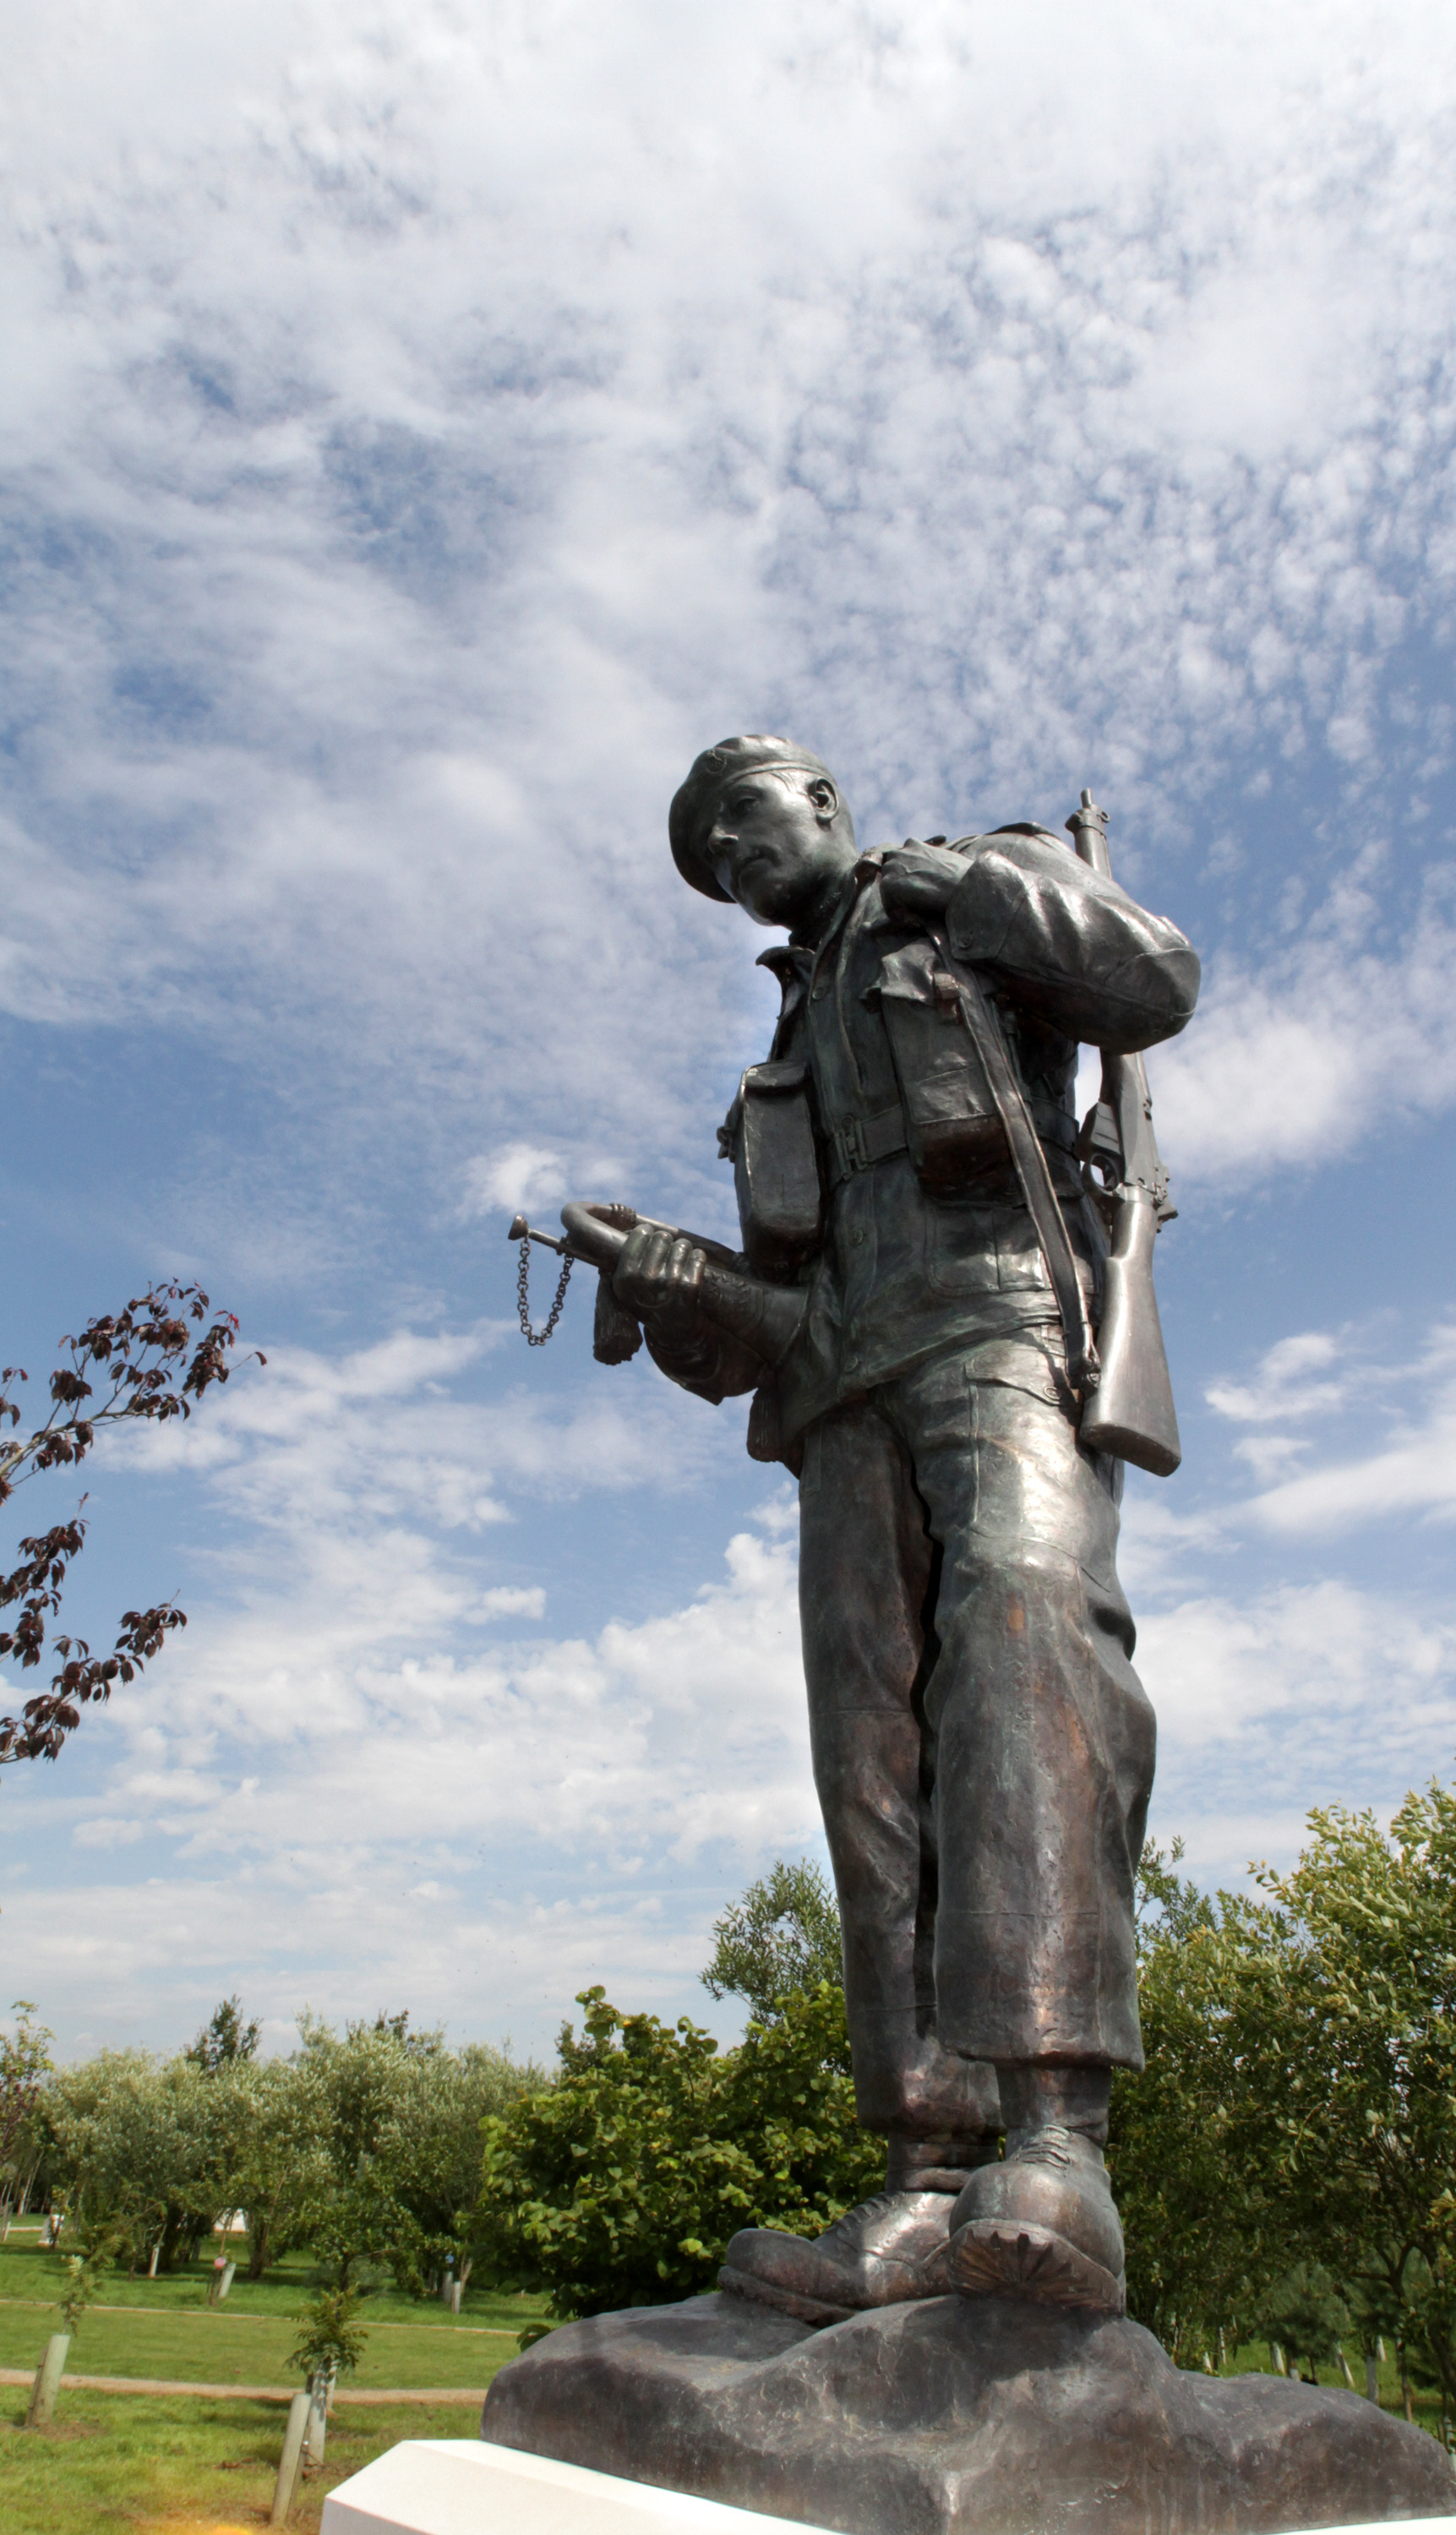 The orginal DLI Memorial unveiled in Staffordshire